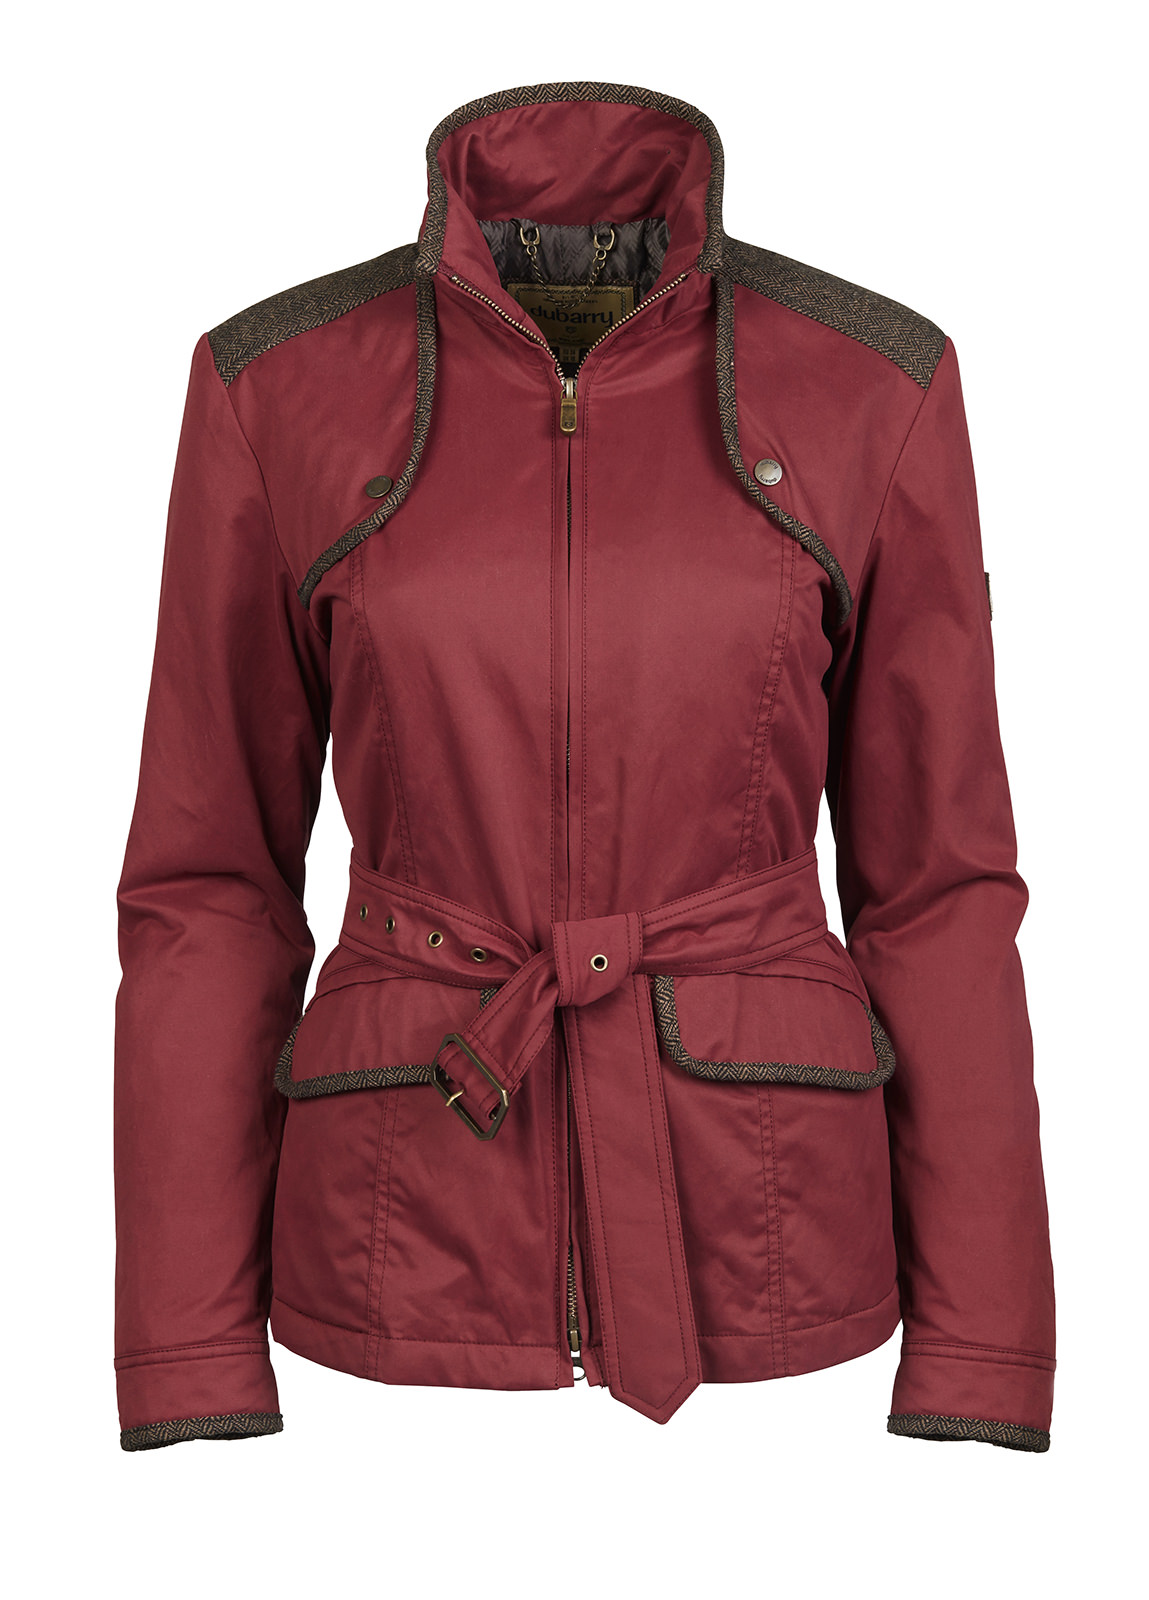 Dubarry_ Enright Belted Jacket - Merlot Multi_Image_2